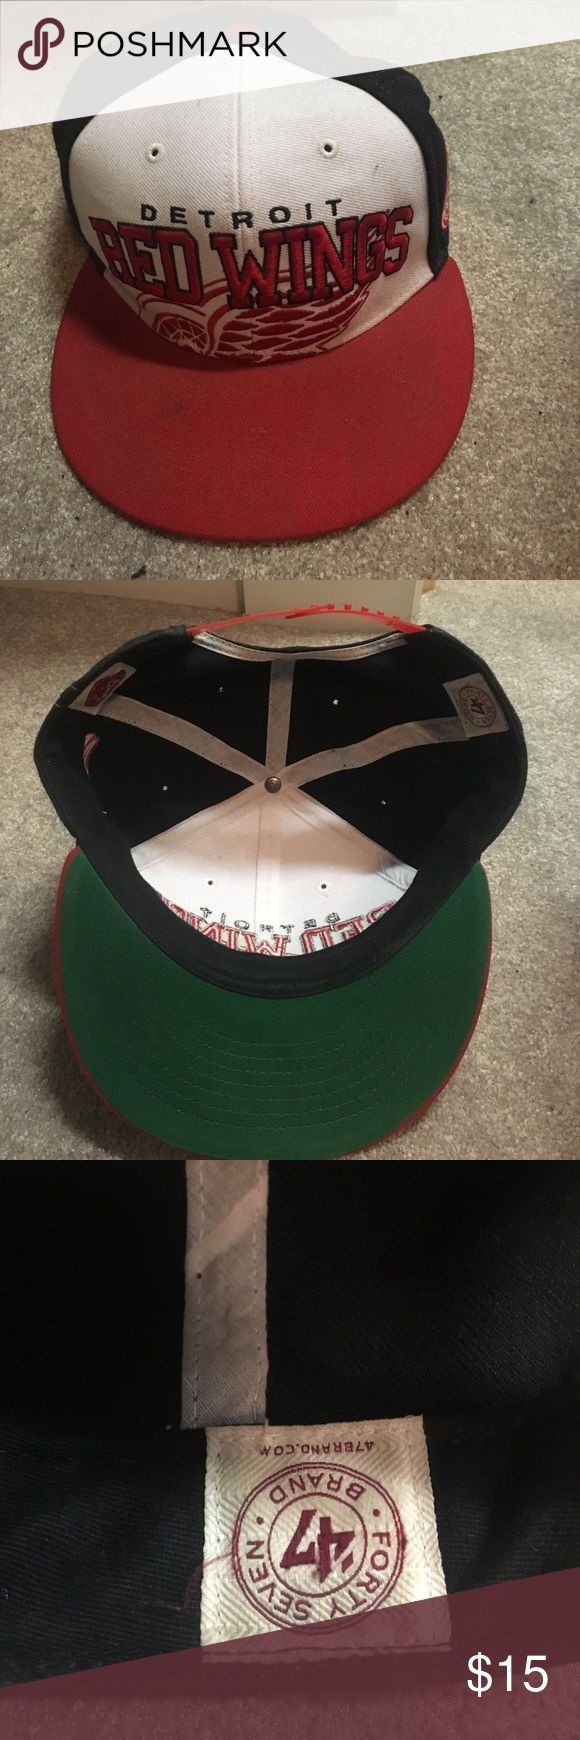 Detroit Red Wings Snapback Good condition used a few times 47 Accessories Hats